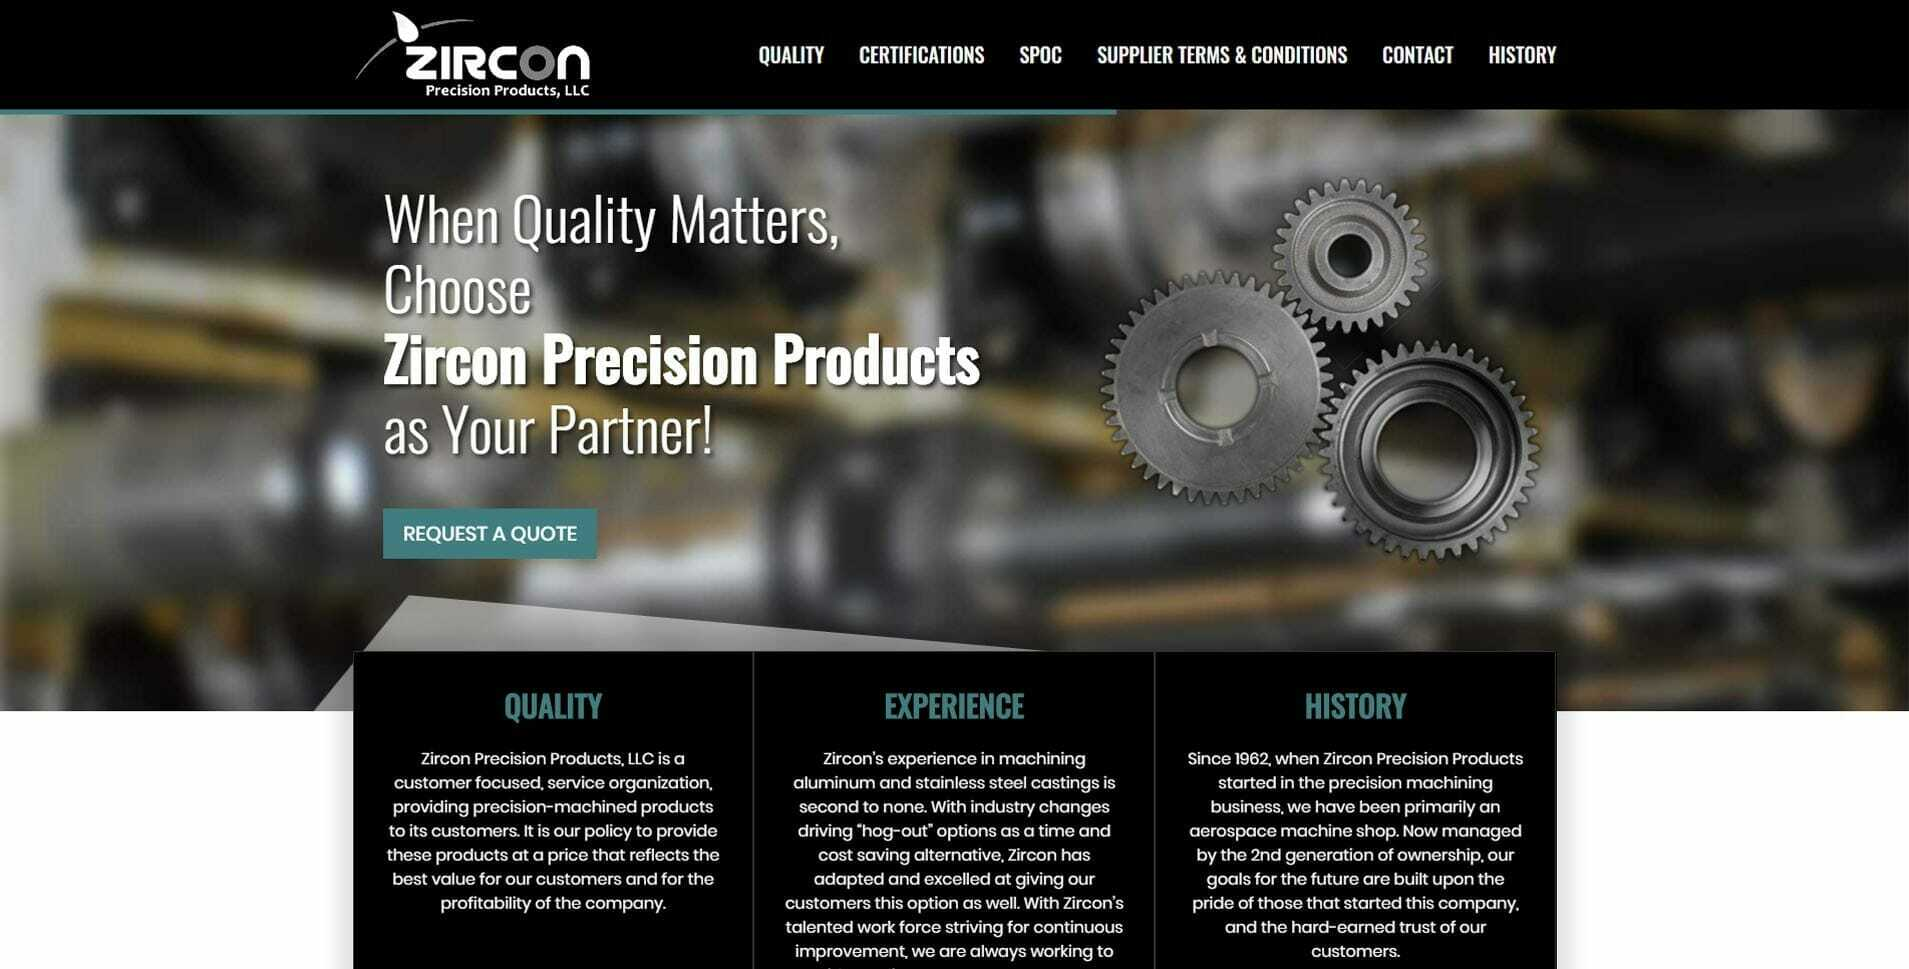 Zircon Precision Products